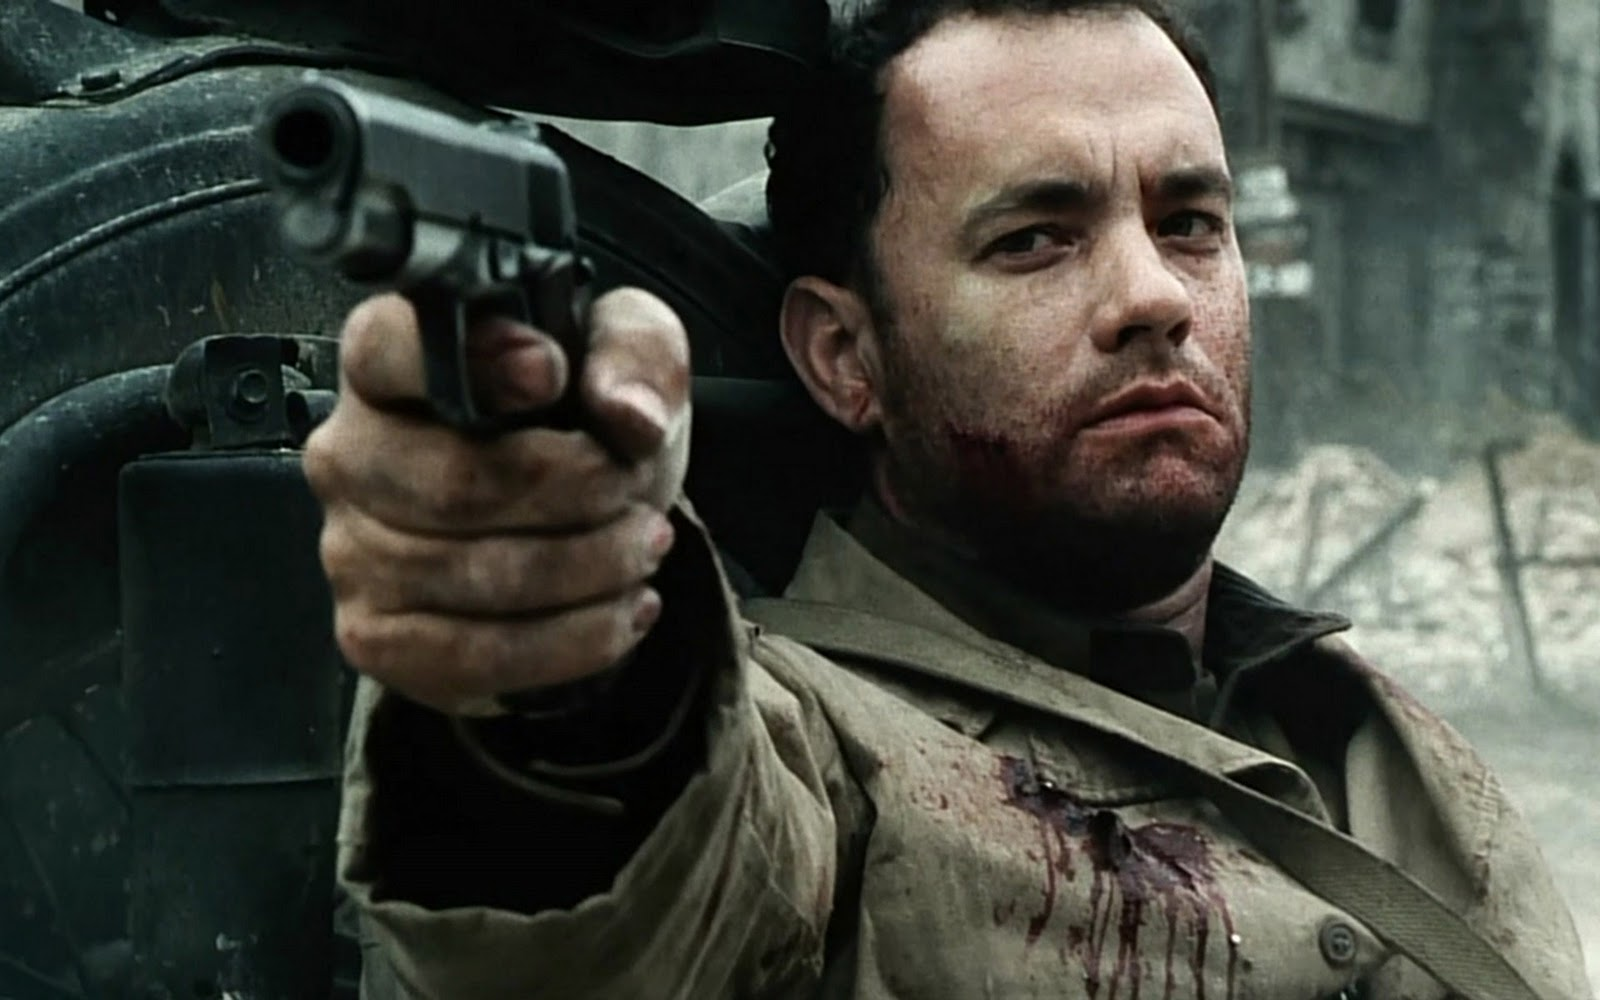 http://1.bp.blogspot.com/-AaCWwBXGbLU/Tn4n3-6ZbcI/AAAAAAAAAEM/tD0p3bXKNqk/s1600/Tom-Hanks-Saving-Private-Ryan.jpg